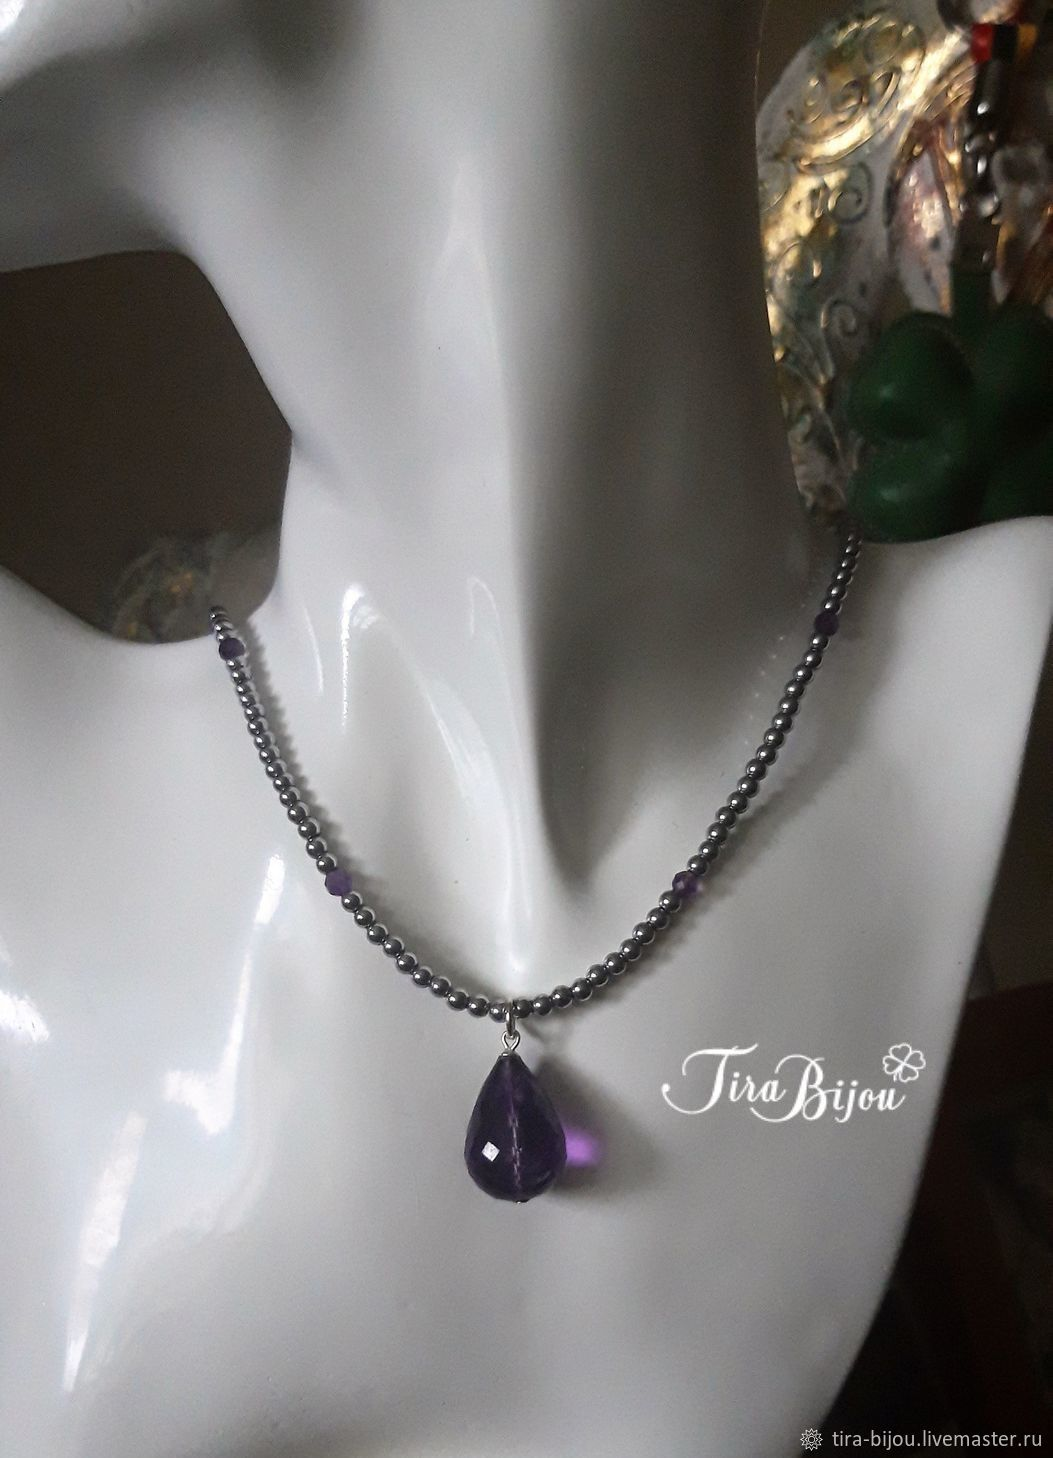 Necklace with amethyst pendant, Necklace, Moscow,  Фото №1